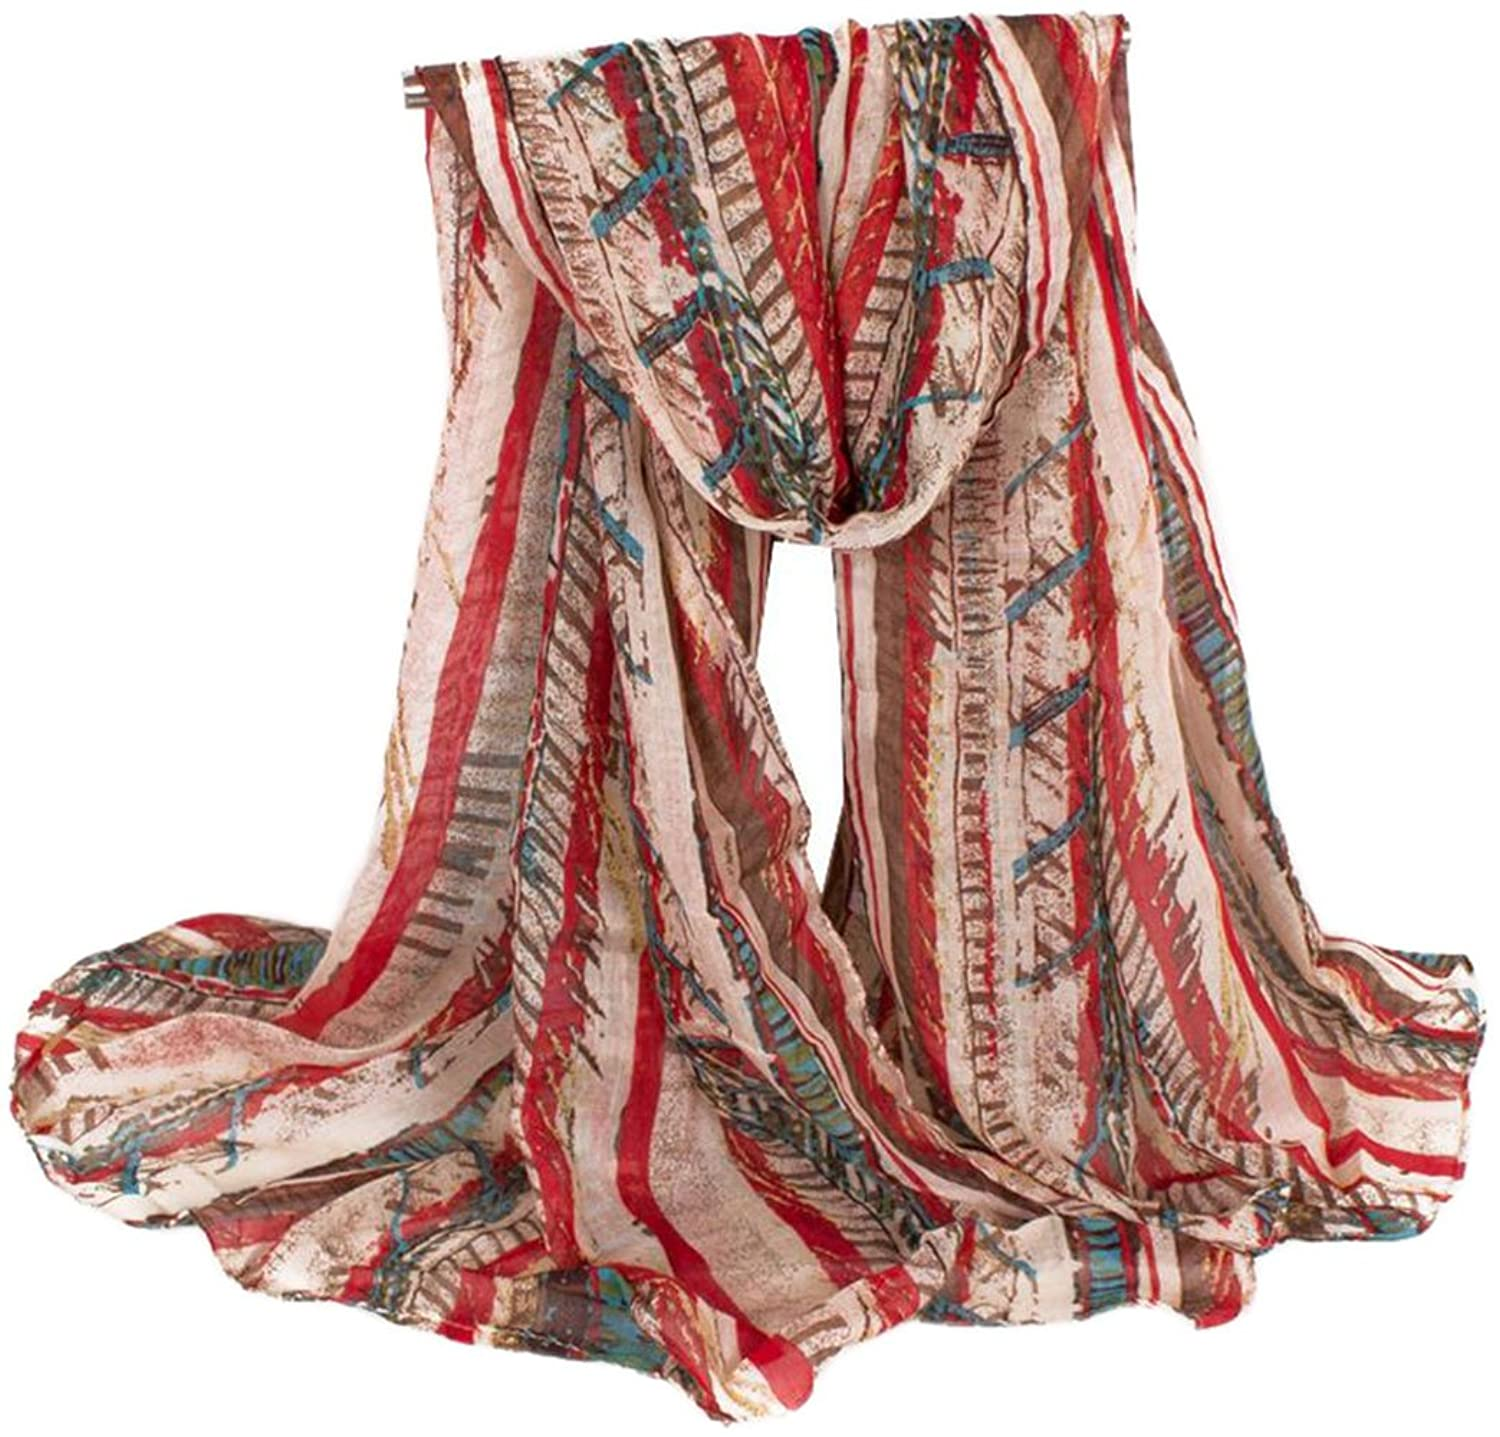 Bettyhome Sexy Lady Voile Bohemian Style Women's Large Scarf Shawl Lightweight